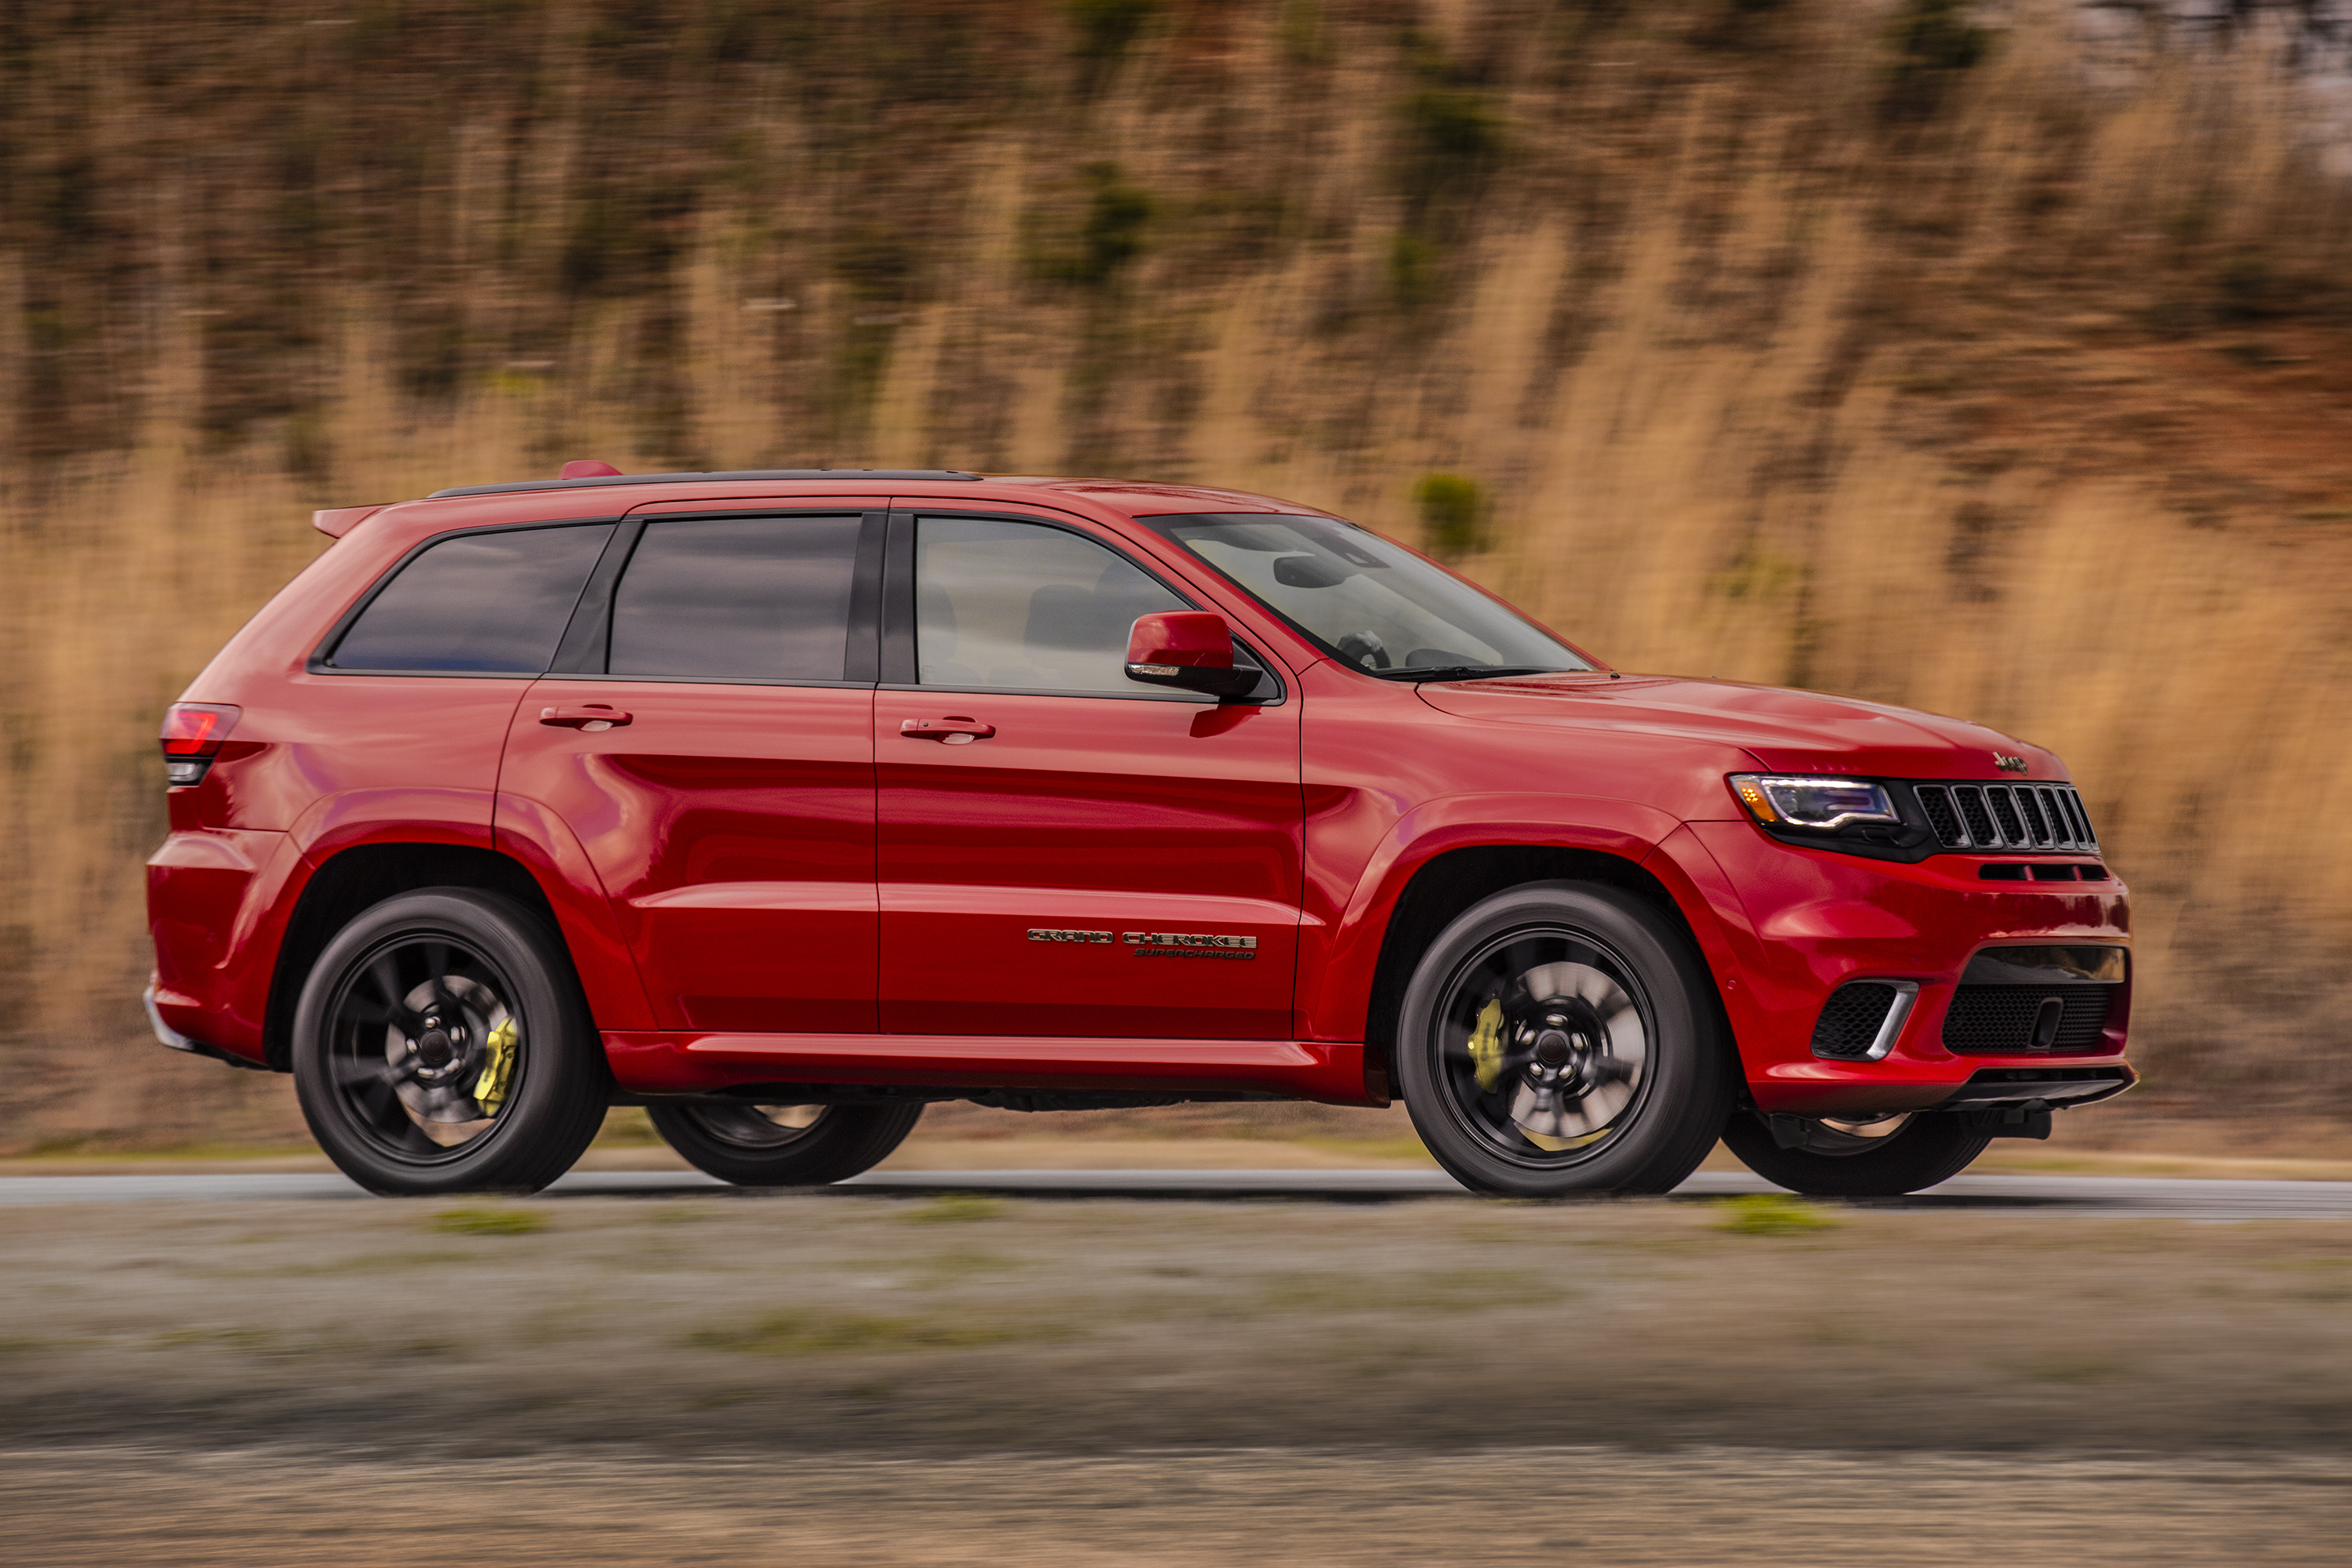 jeep says the grand cherokee trackhawk is the fastest suv ever